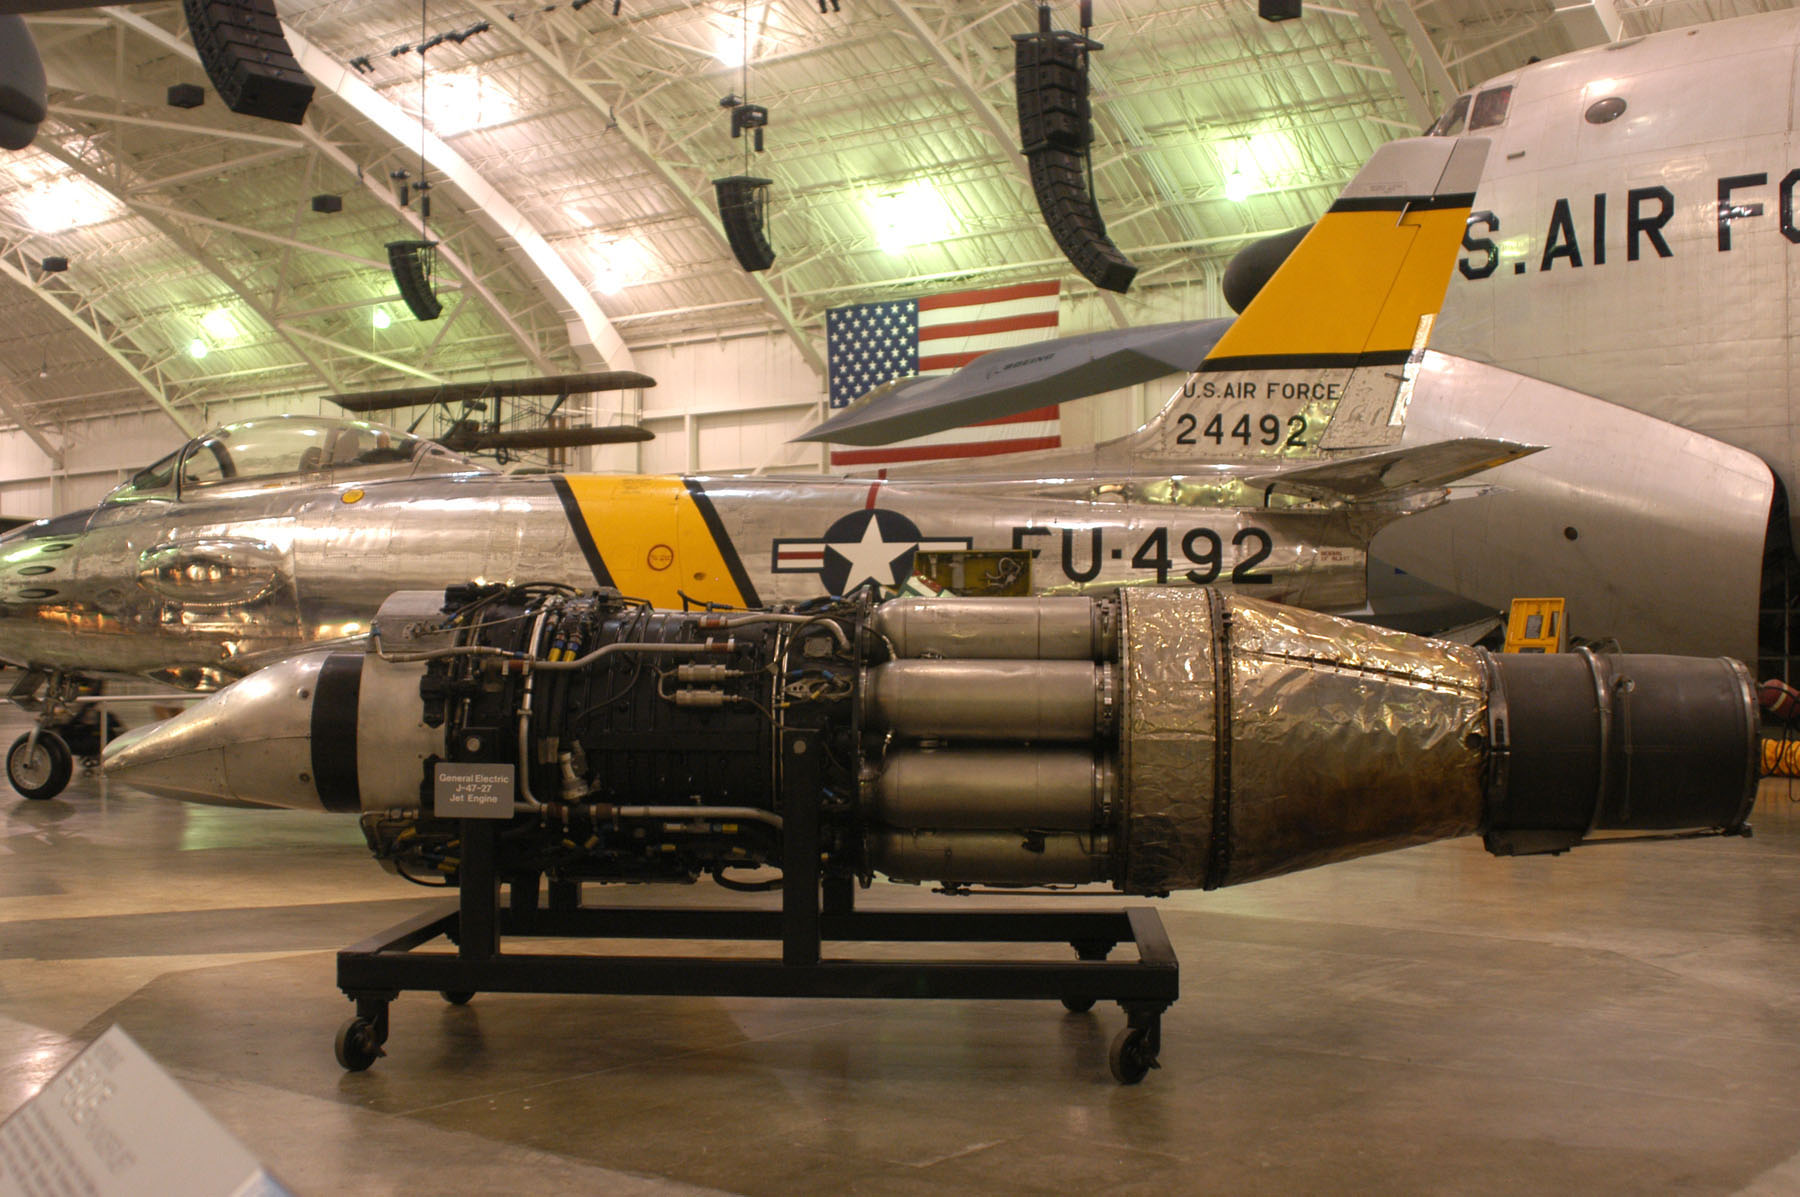 General Electric J47 Turbojet National Museum of the US Air